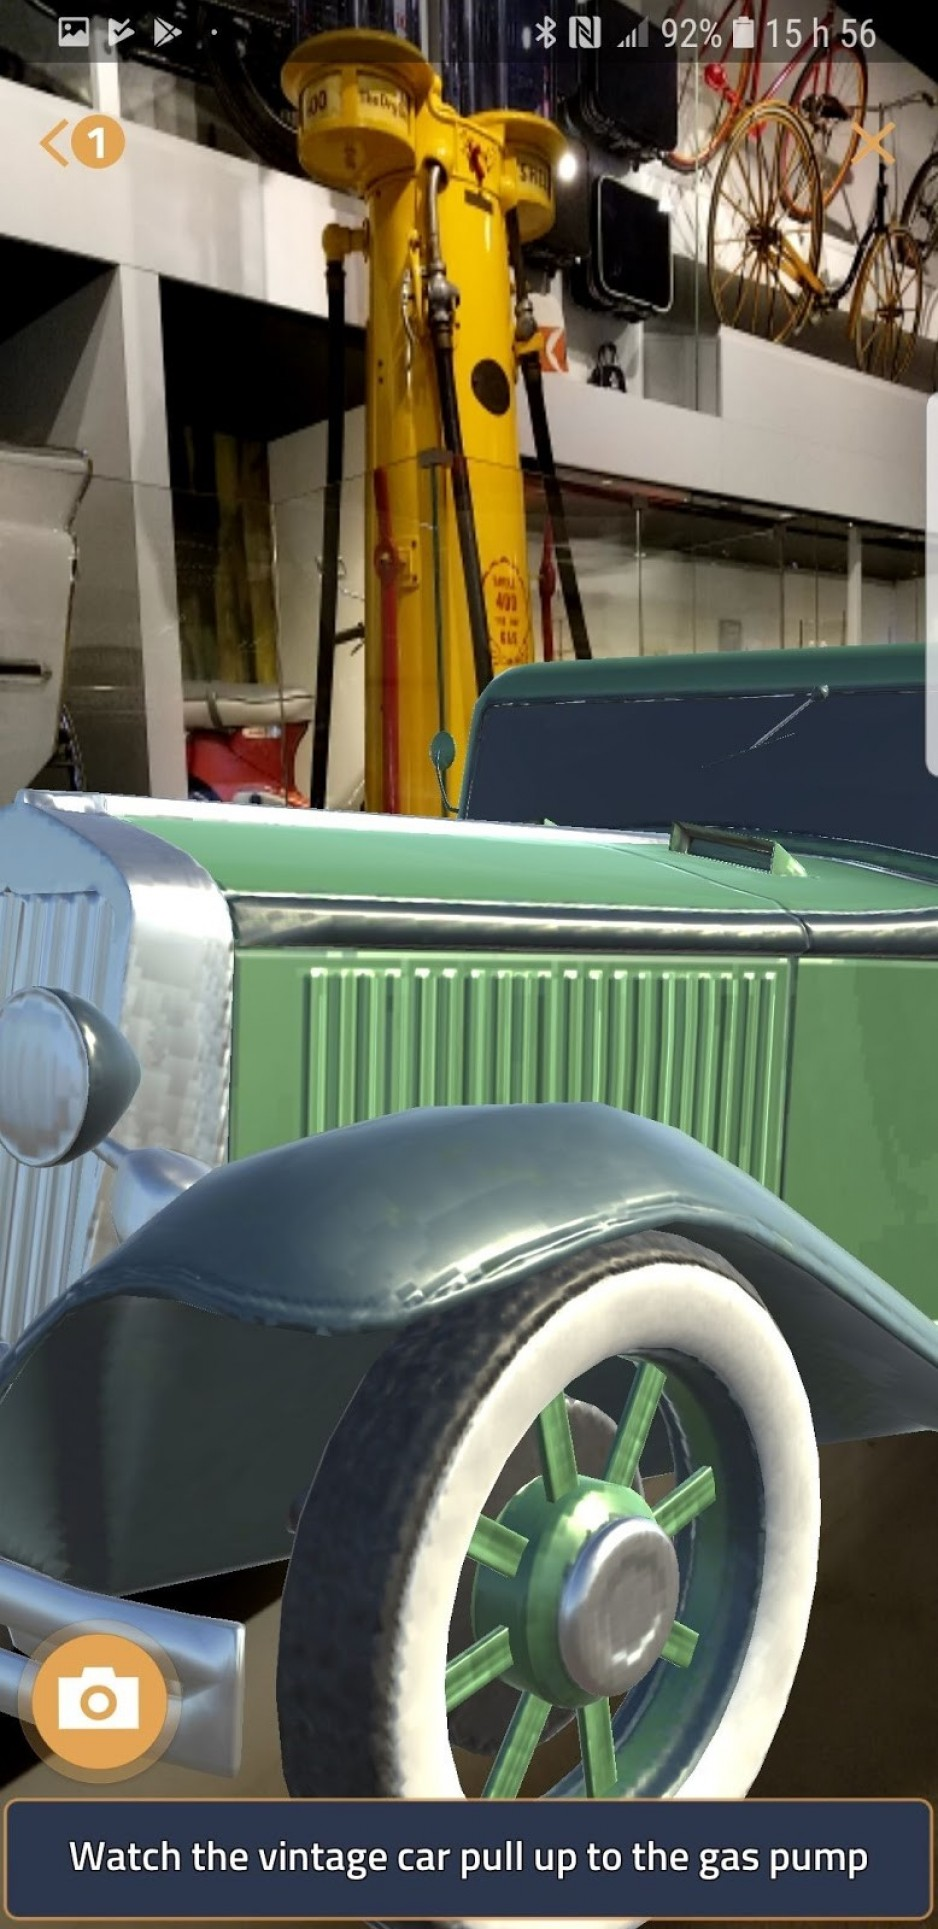 A moving image of a vintage green car appears on a phone screen after someone has found the gas pump in the museum.